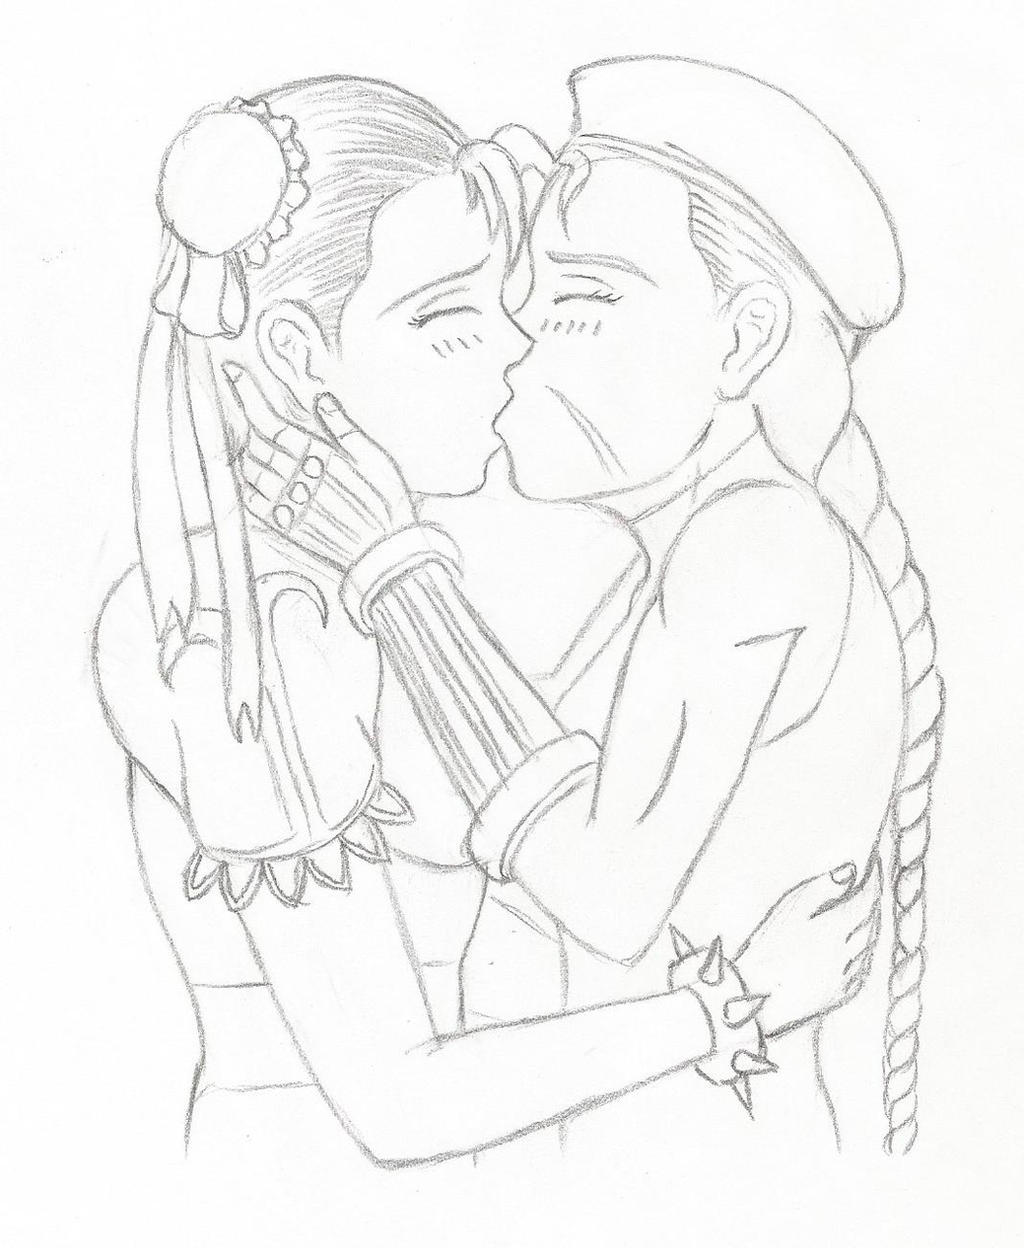 Cammy and Chun kiss - sketch by HPL-The-Outsider